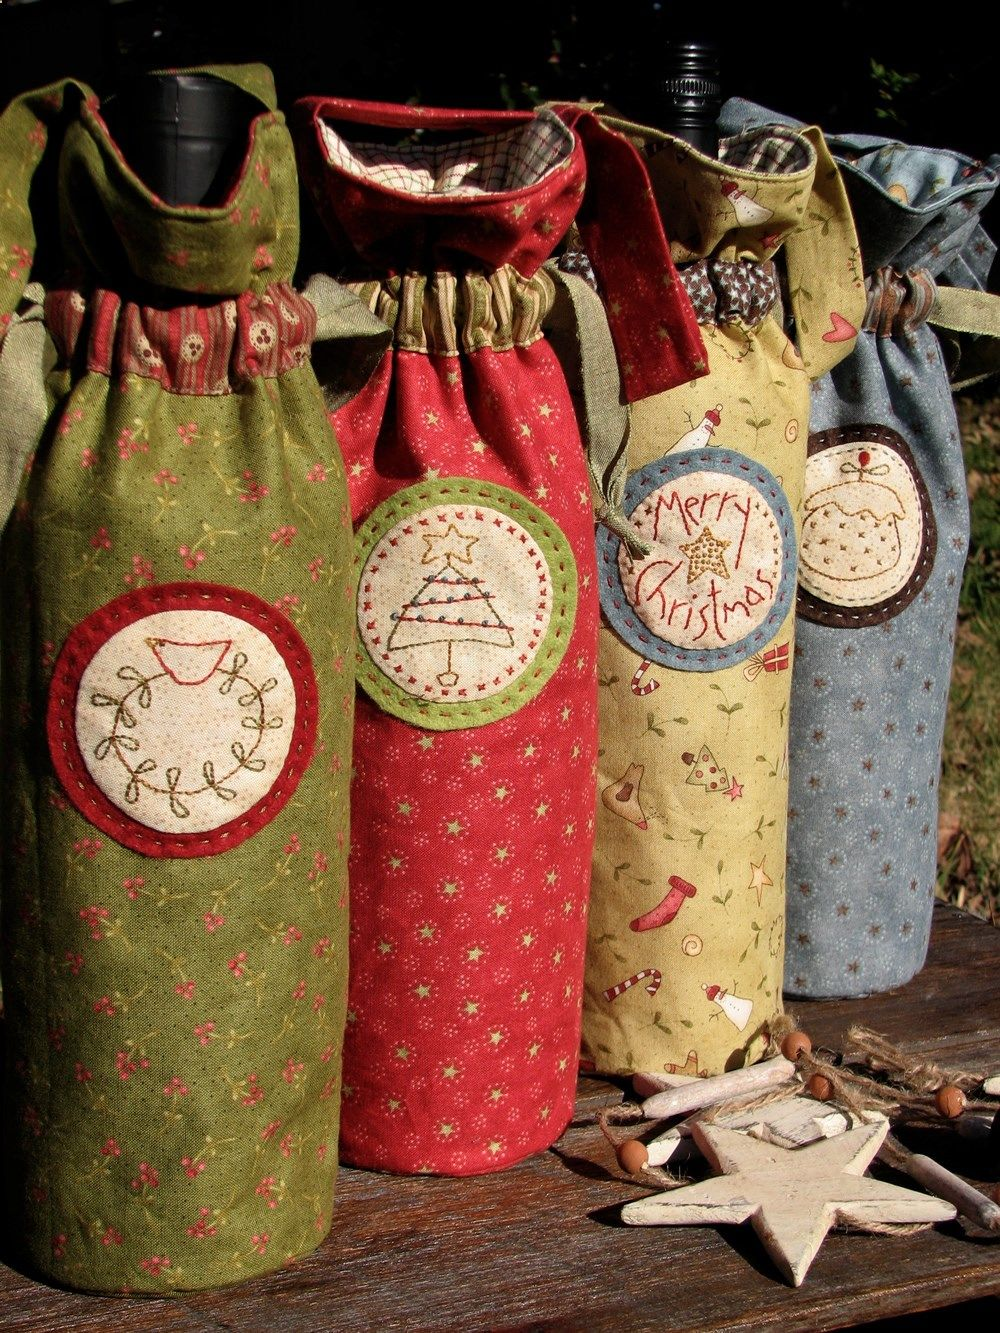 Sew Wine Bags I Would Prefer A Different Fabric But The Idea Is Good Wine Bottle Gift Bag Christmas Sewing Crafts